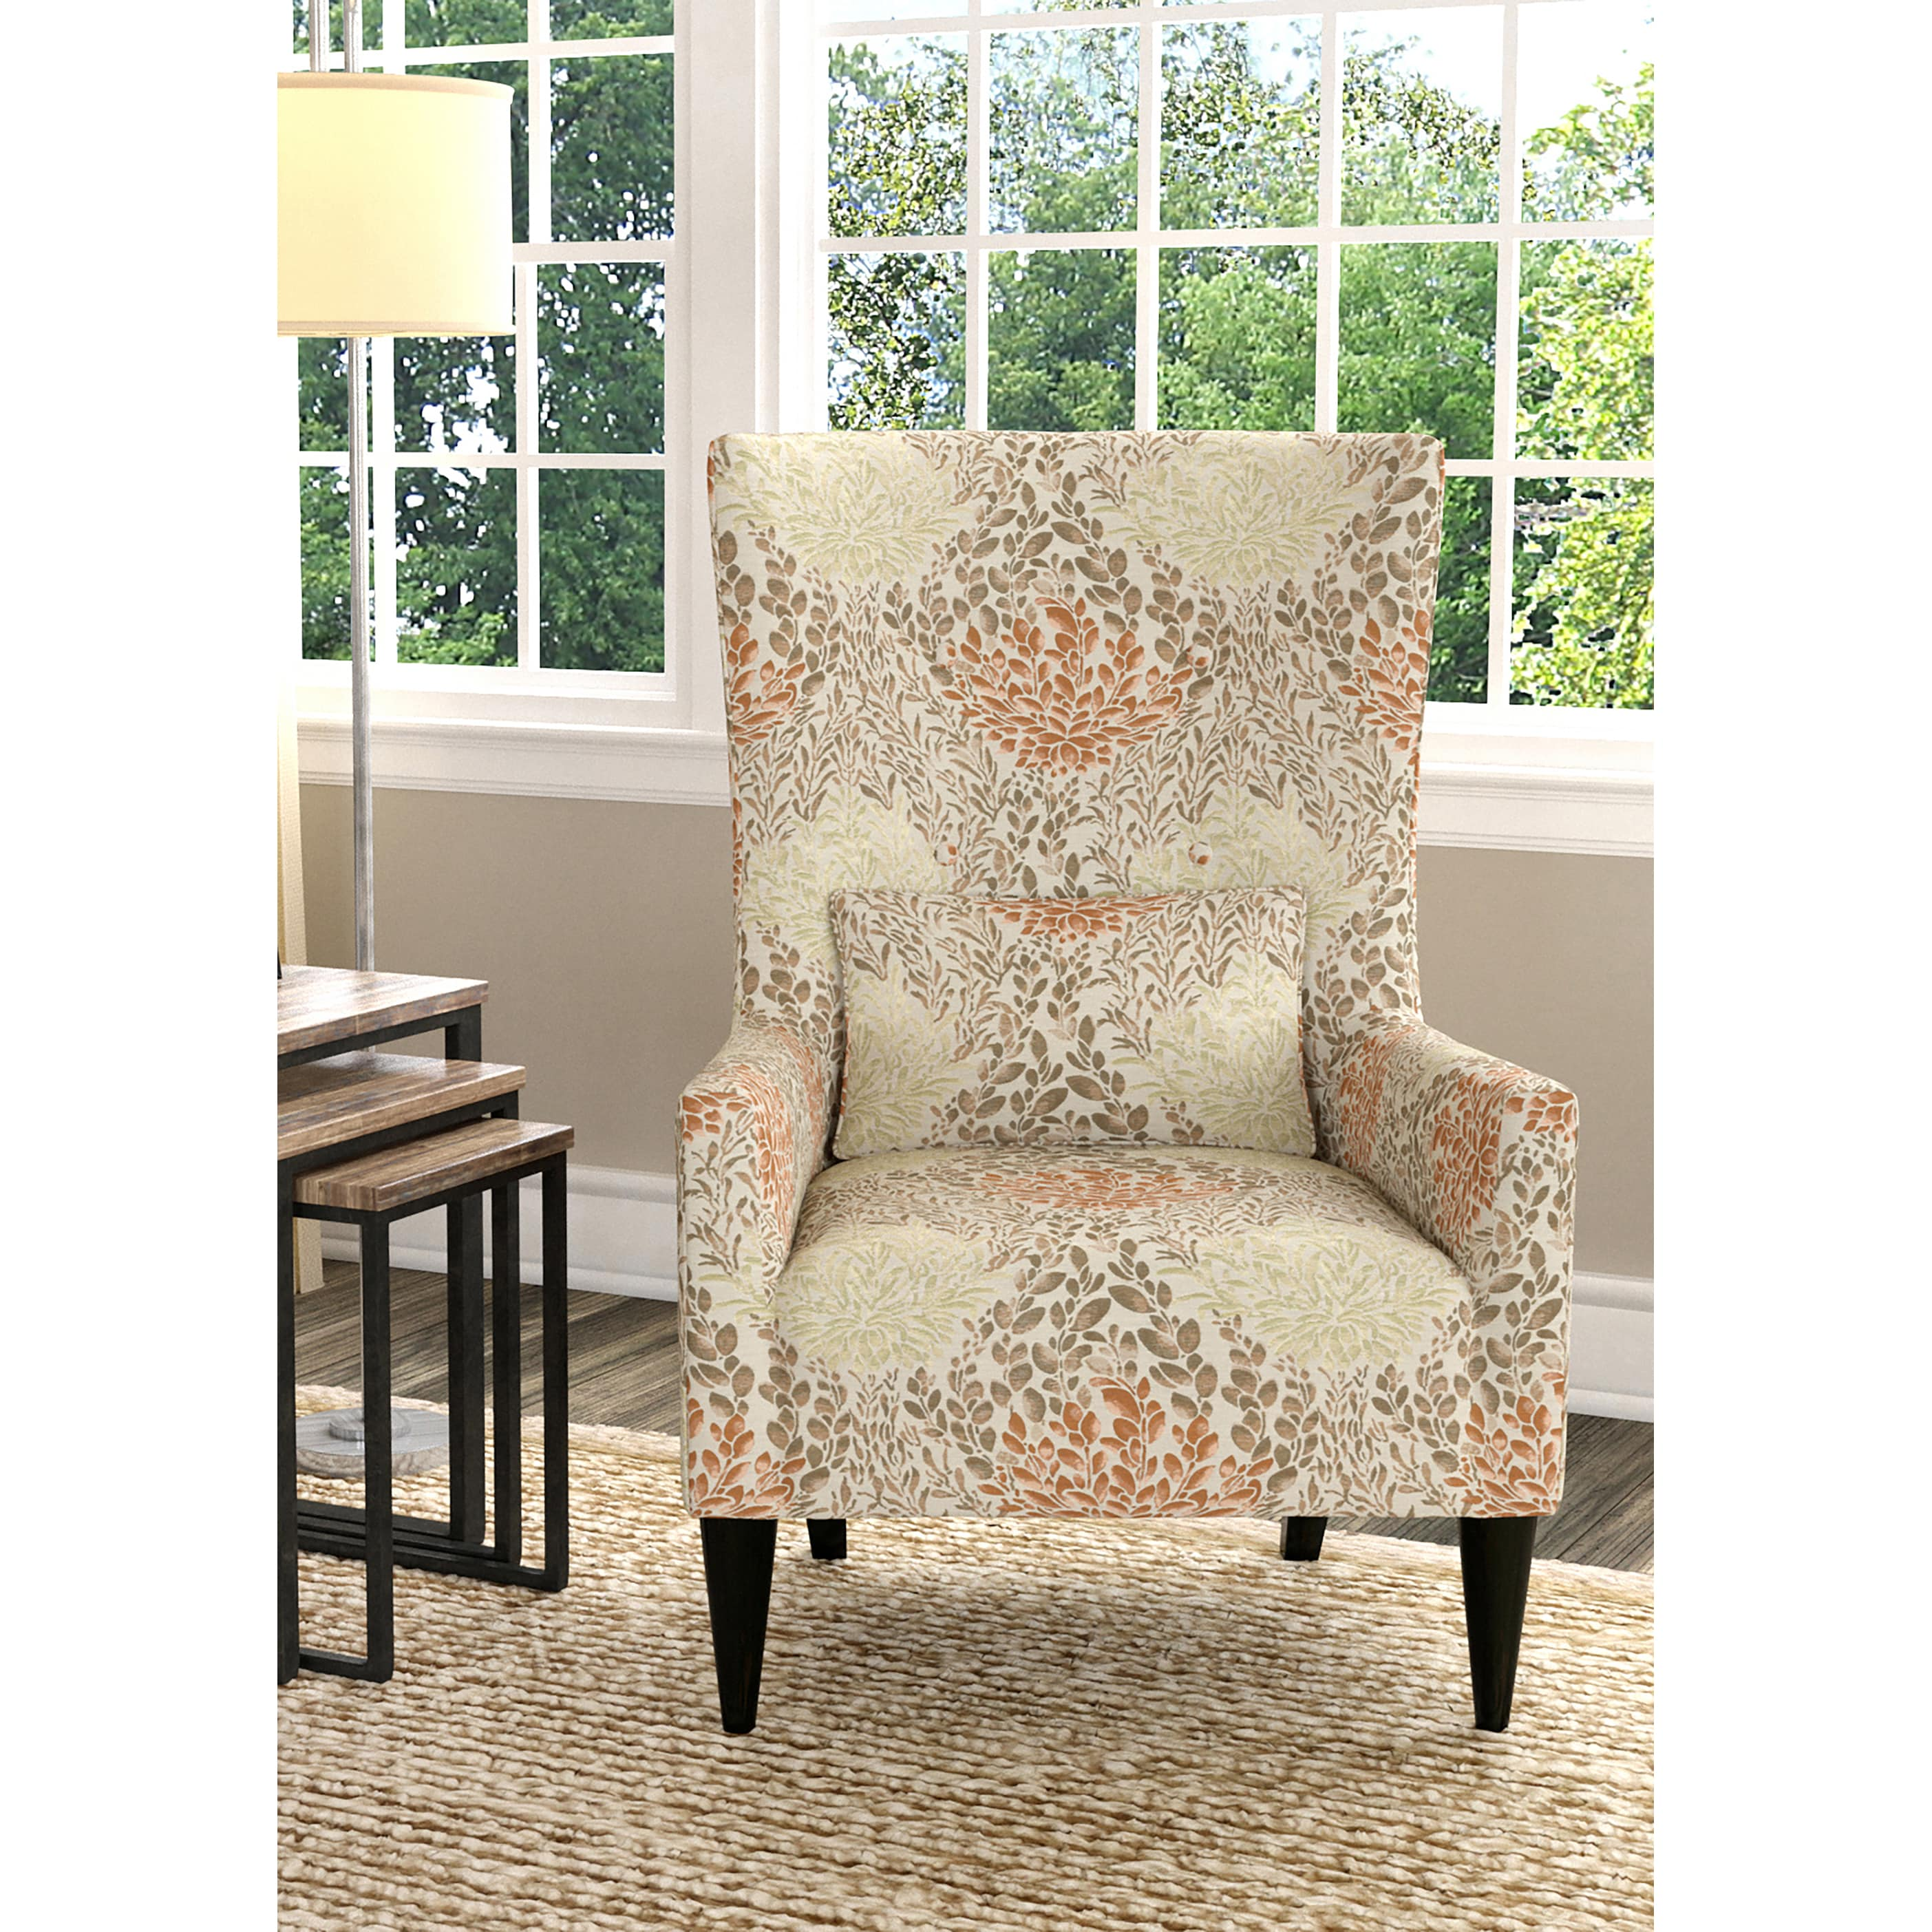 Good Handy Living Venecia Orange Floral High Back Wing Chair   Free Shipping  Today   Overstock   21836905